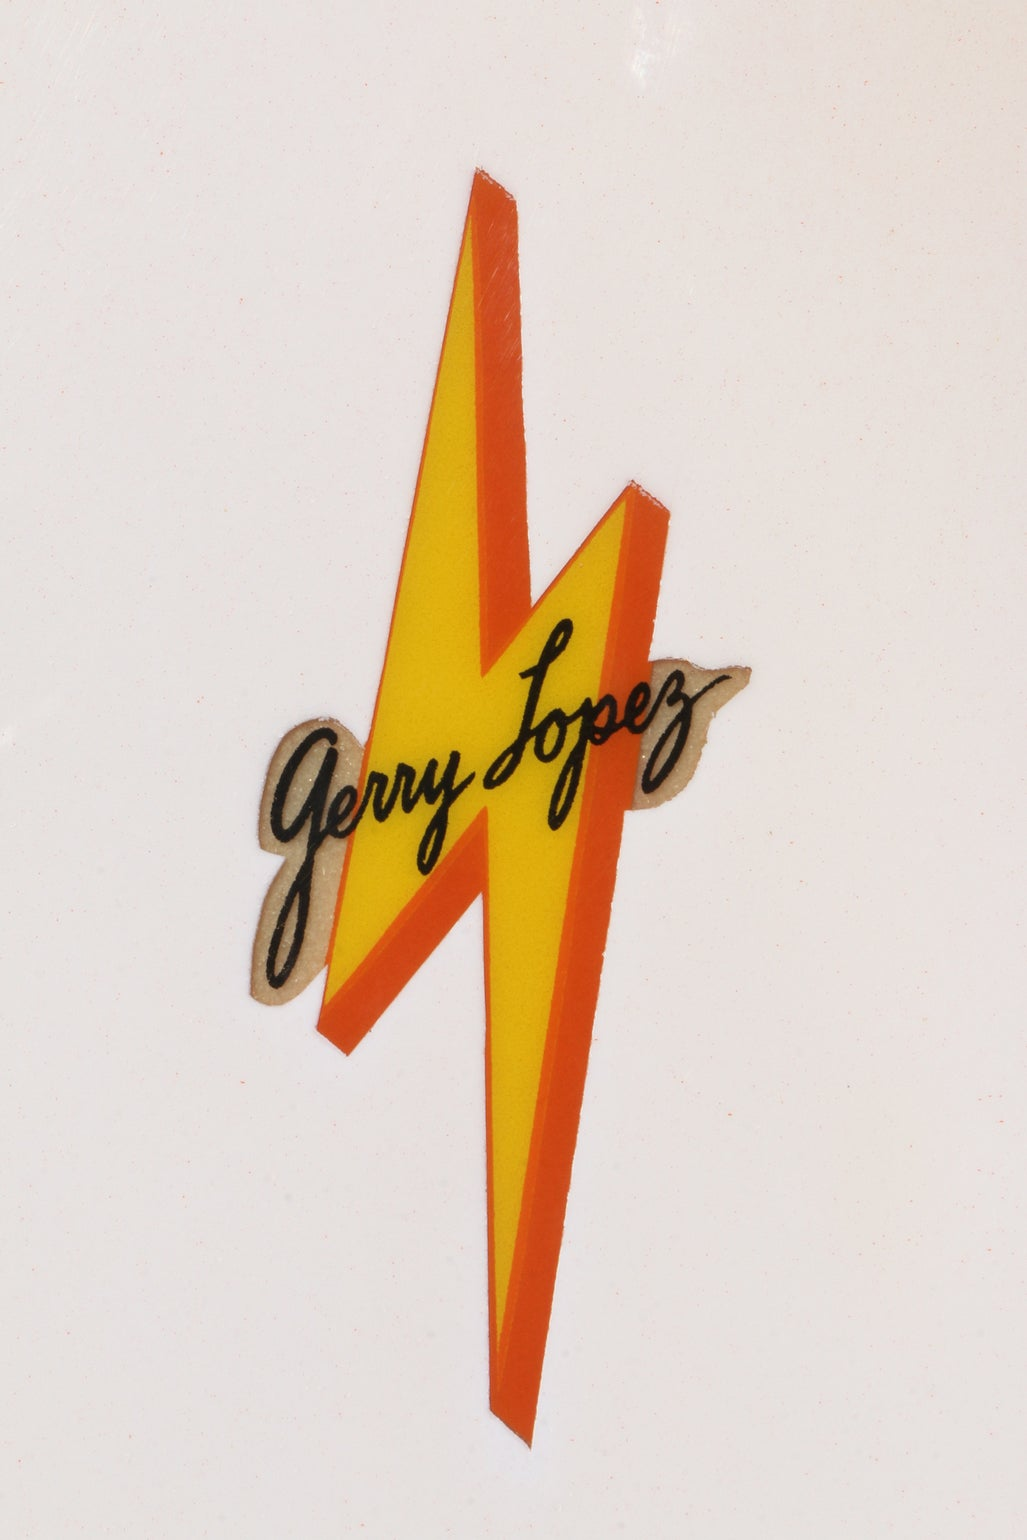 orange terry martin shaped george lopez lightning bolt